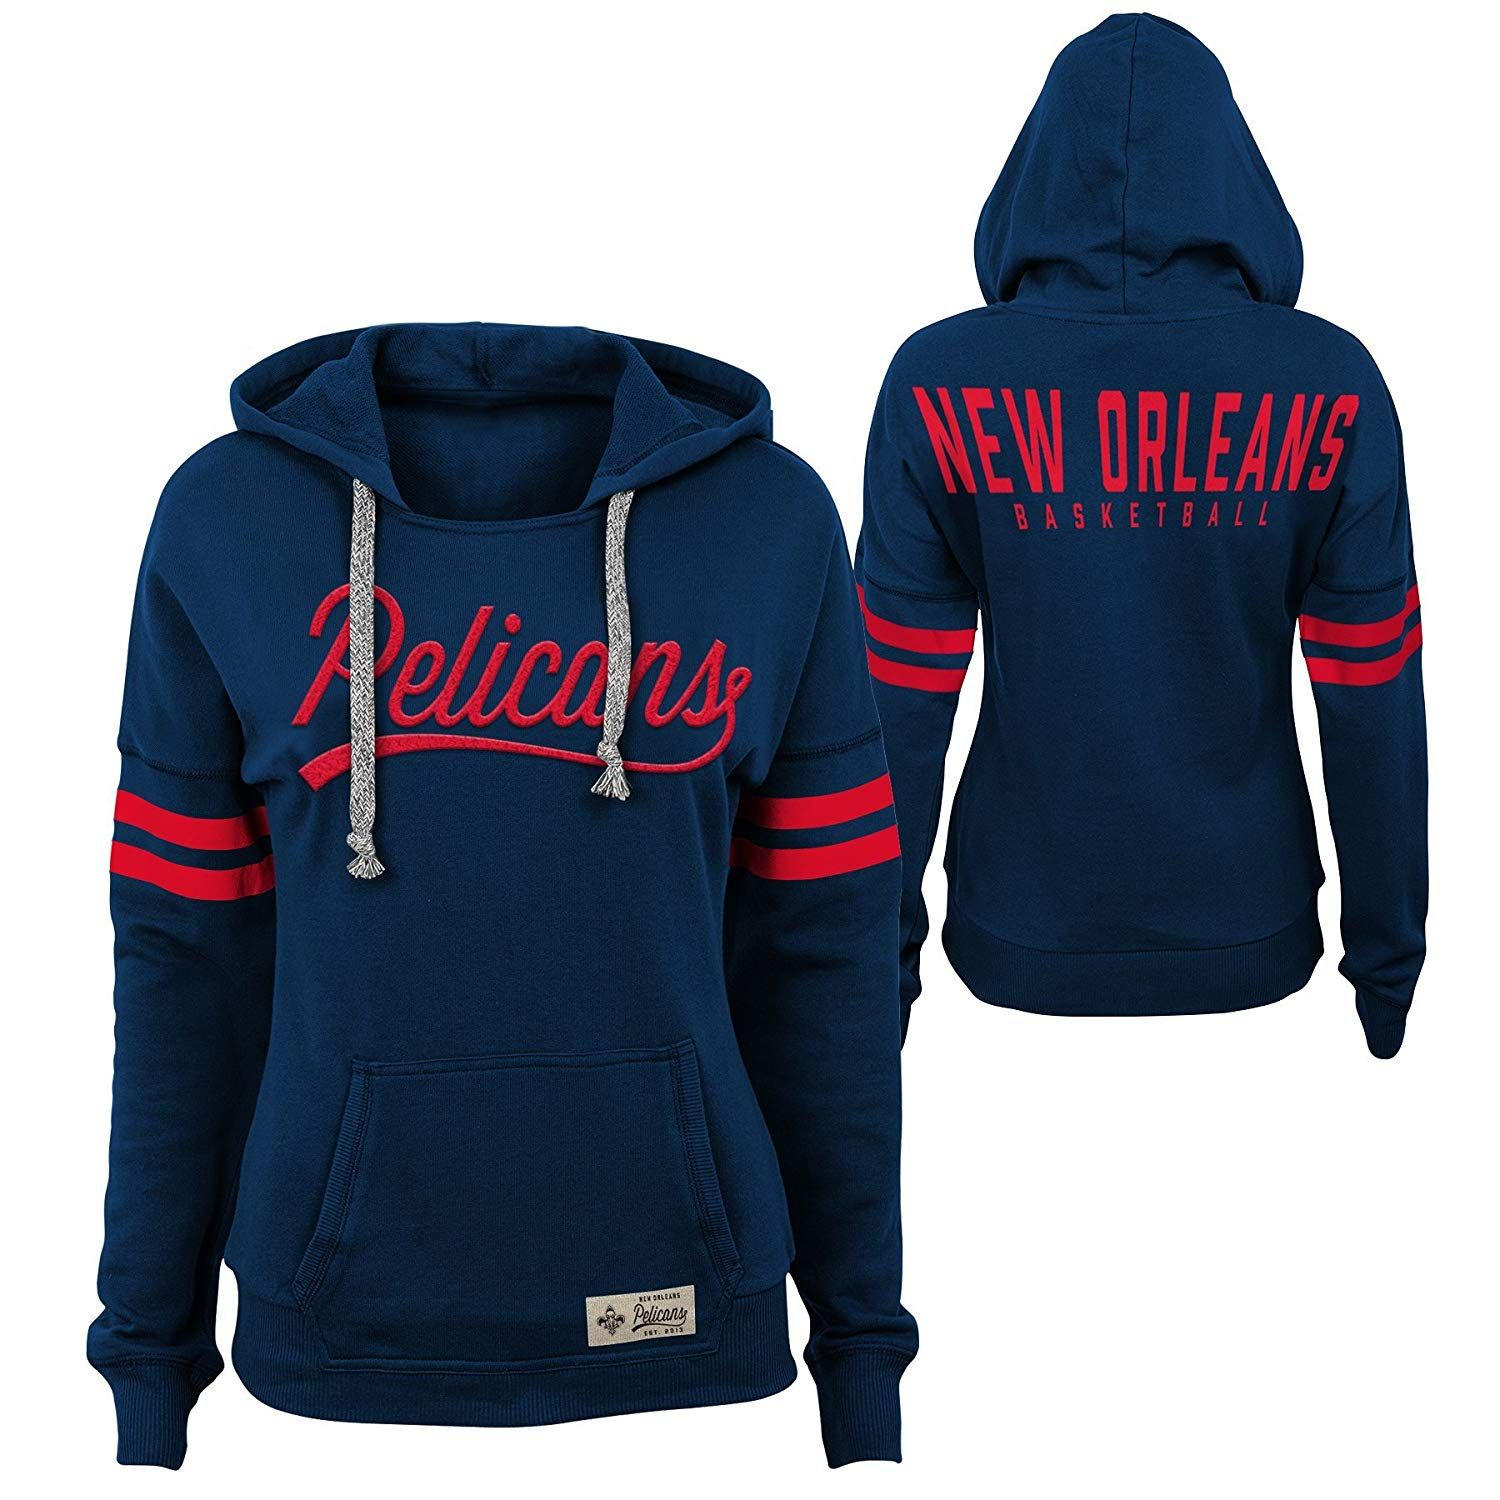 NBA by Outerstuff NBA boys Nba Kids /& Youth Boys Prime Pullover Hoodie